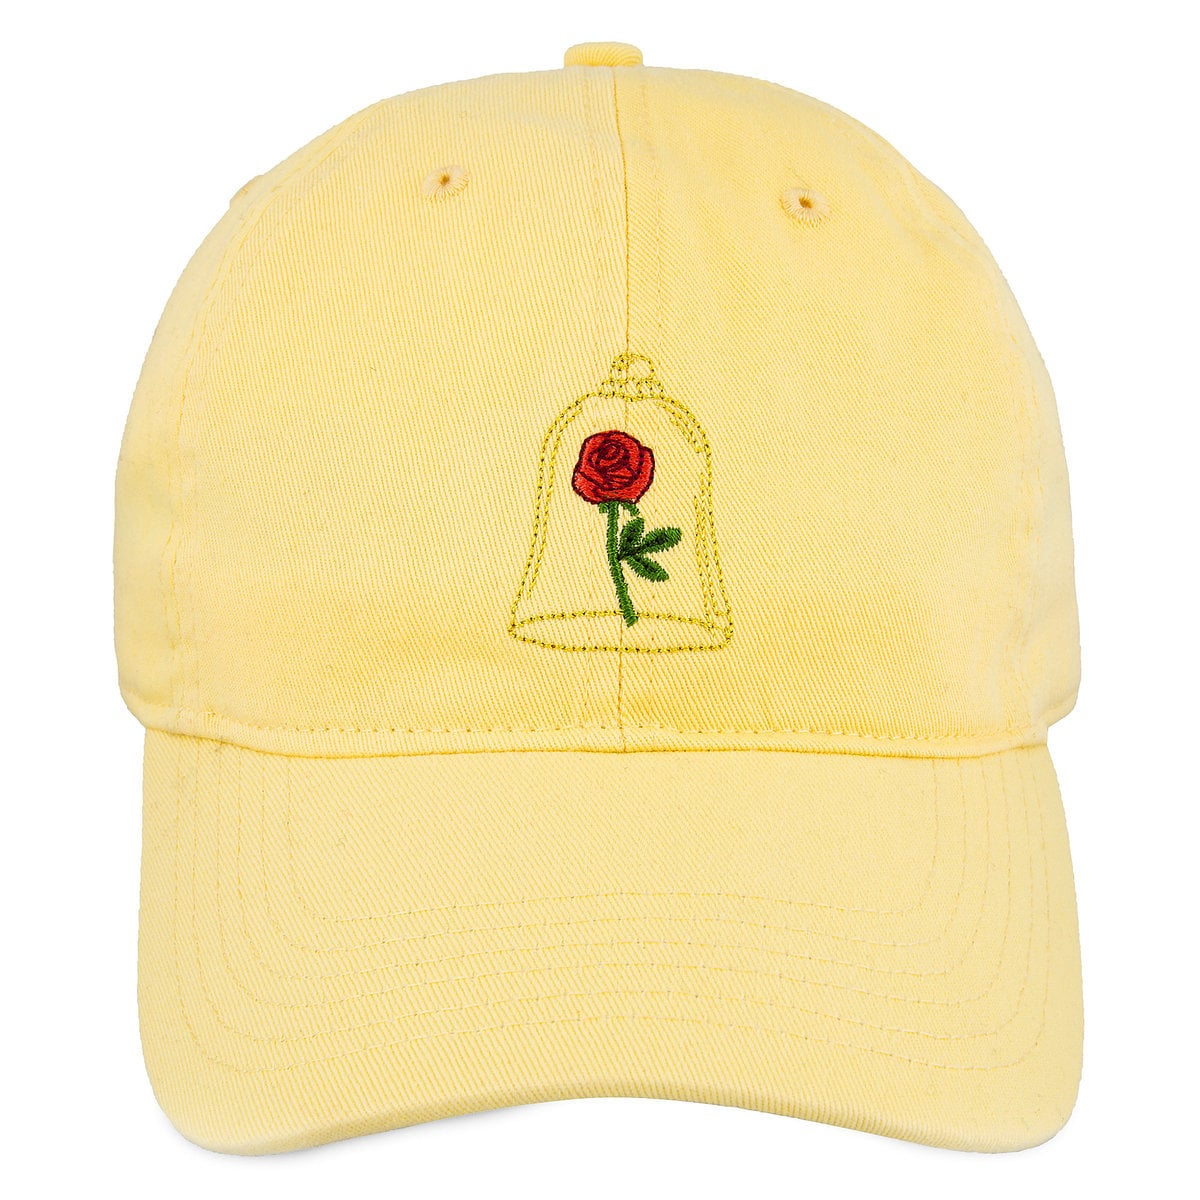 f9eb7d04 Product Image of Beauty and the Beast Enchanted Rose Baseball Cap for  Adults # 1